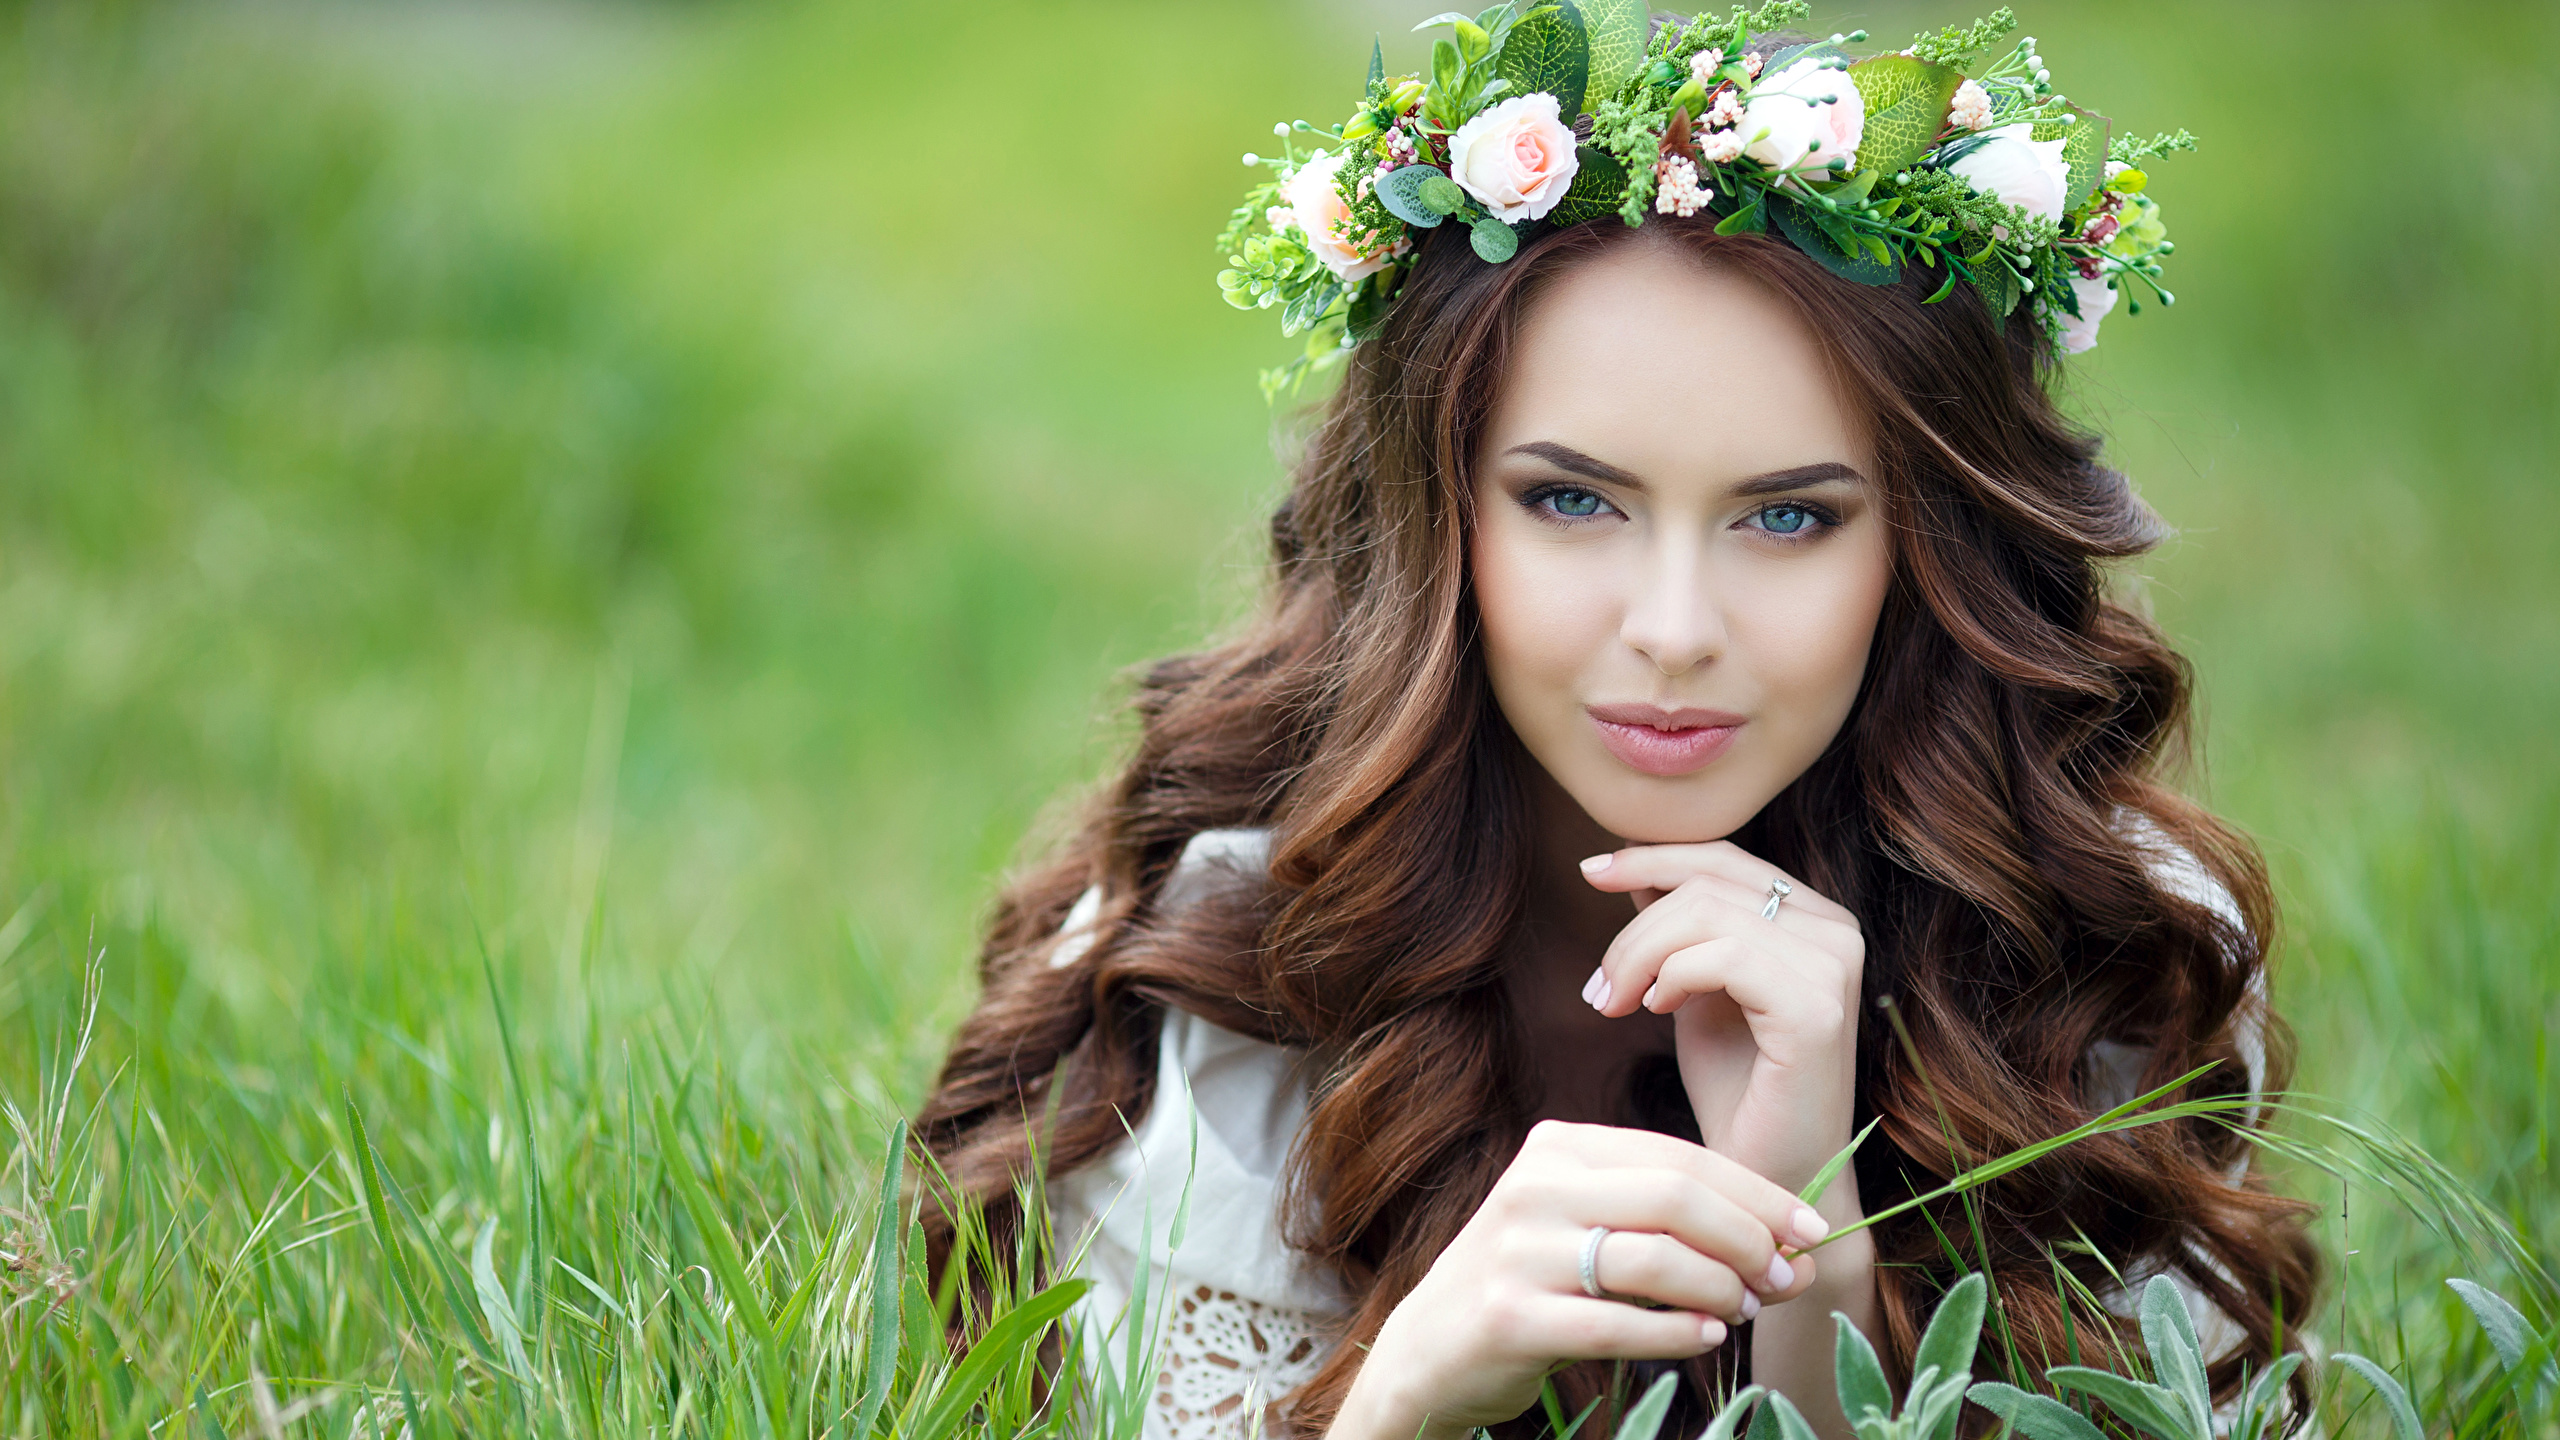 https://s1.1zoom.ru/b6644/646/Fingers_Brown_haired_Grass_Glance_529063_2560x1440.jpg